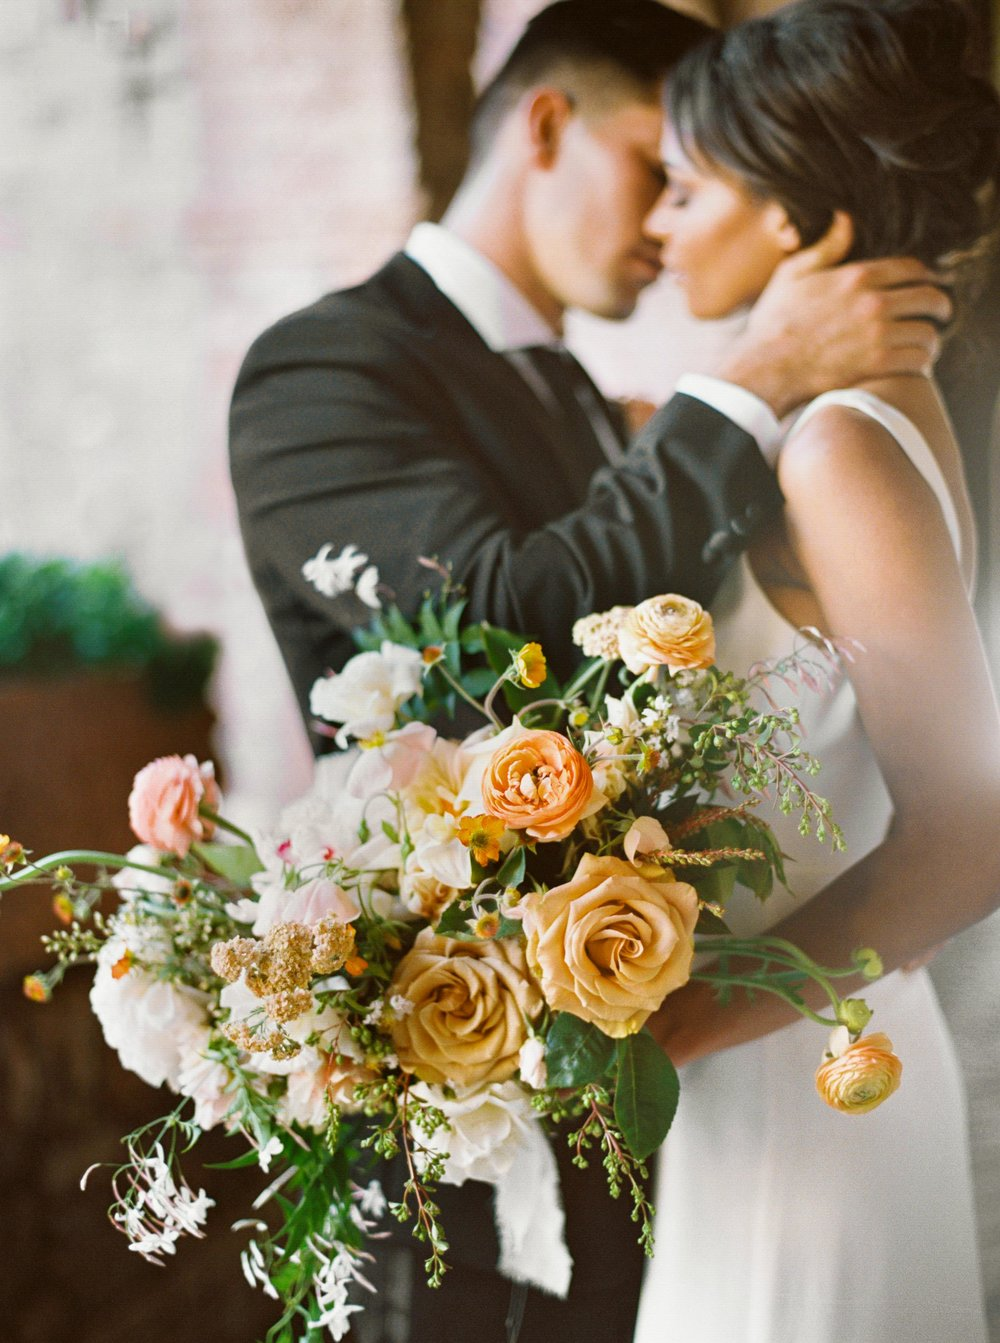 031napa_wedding_photographer_and_videographer_destination_and_elopement_photography.jpg